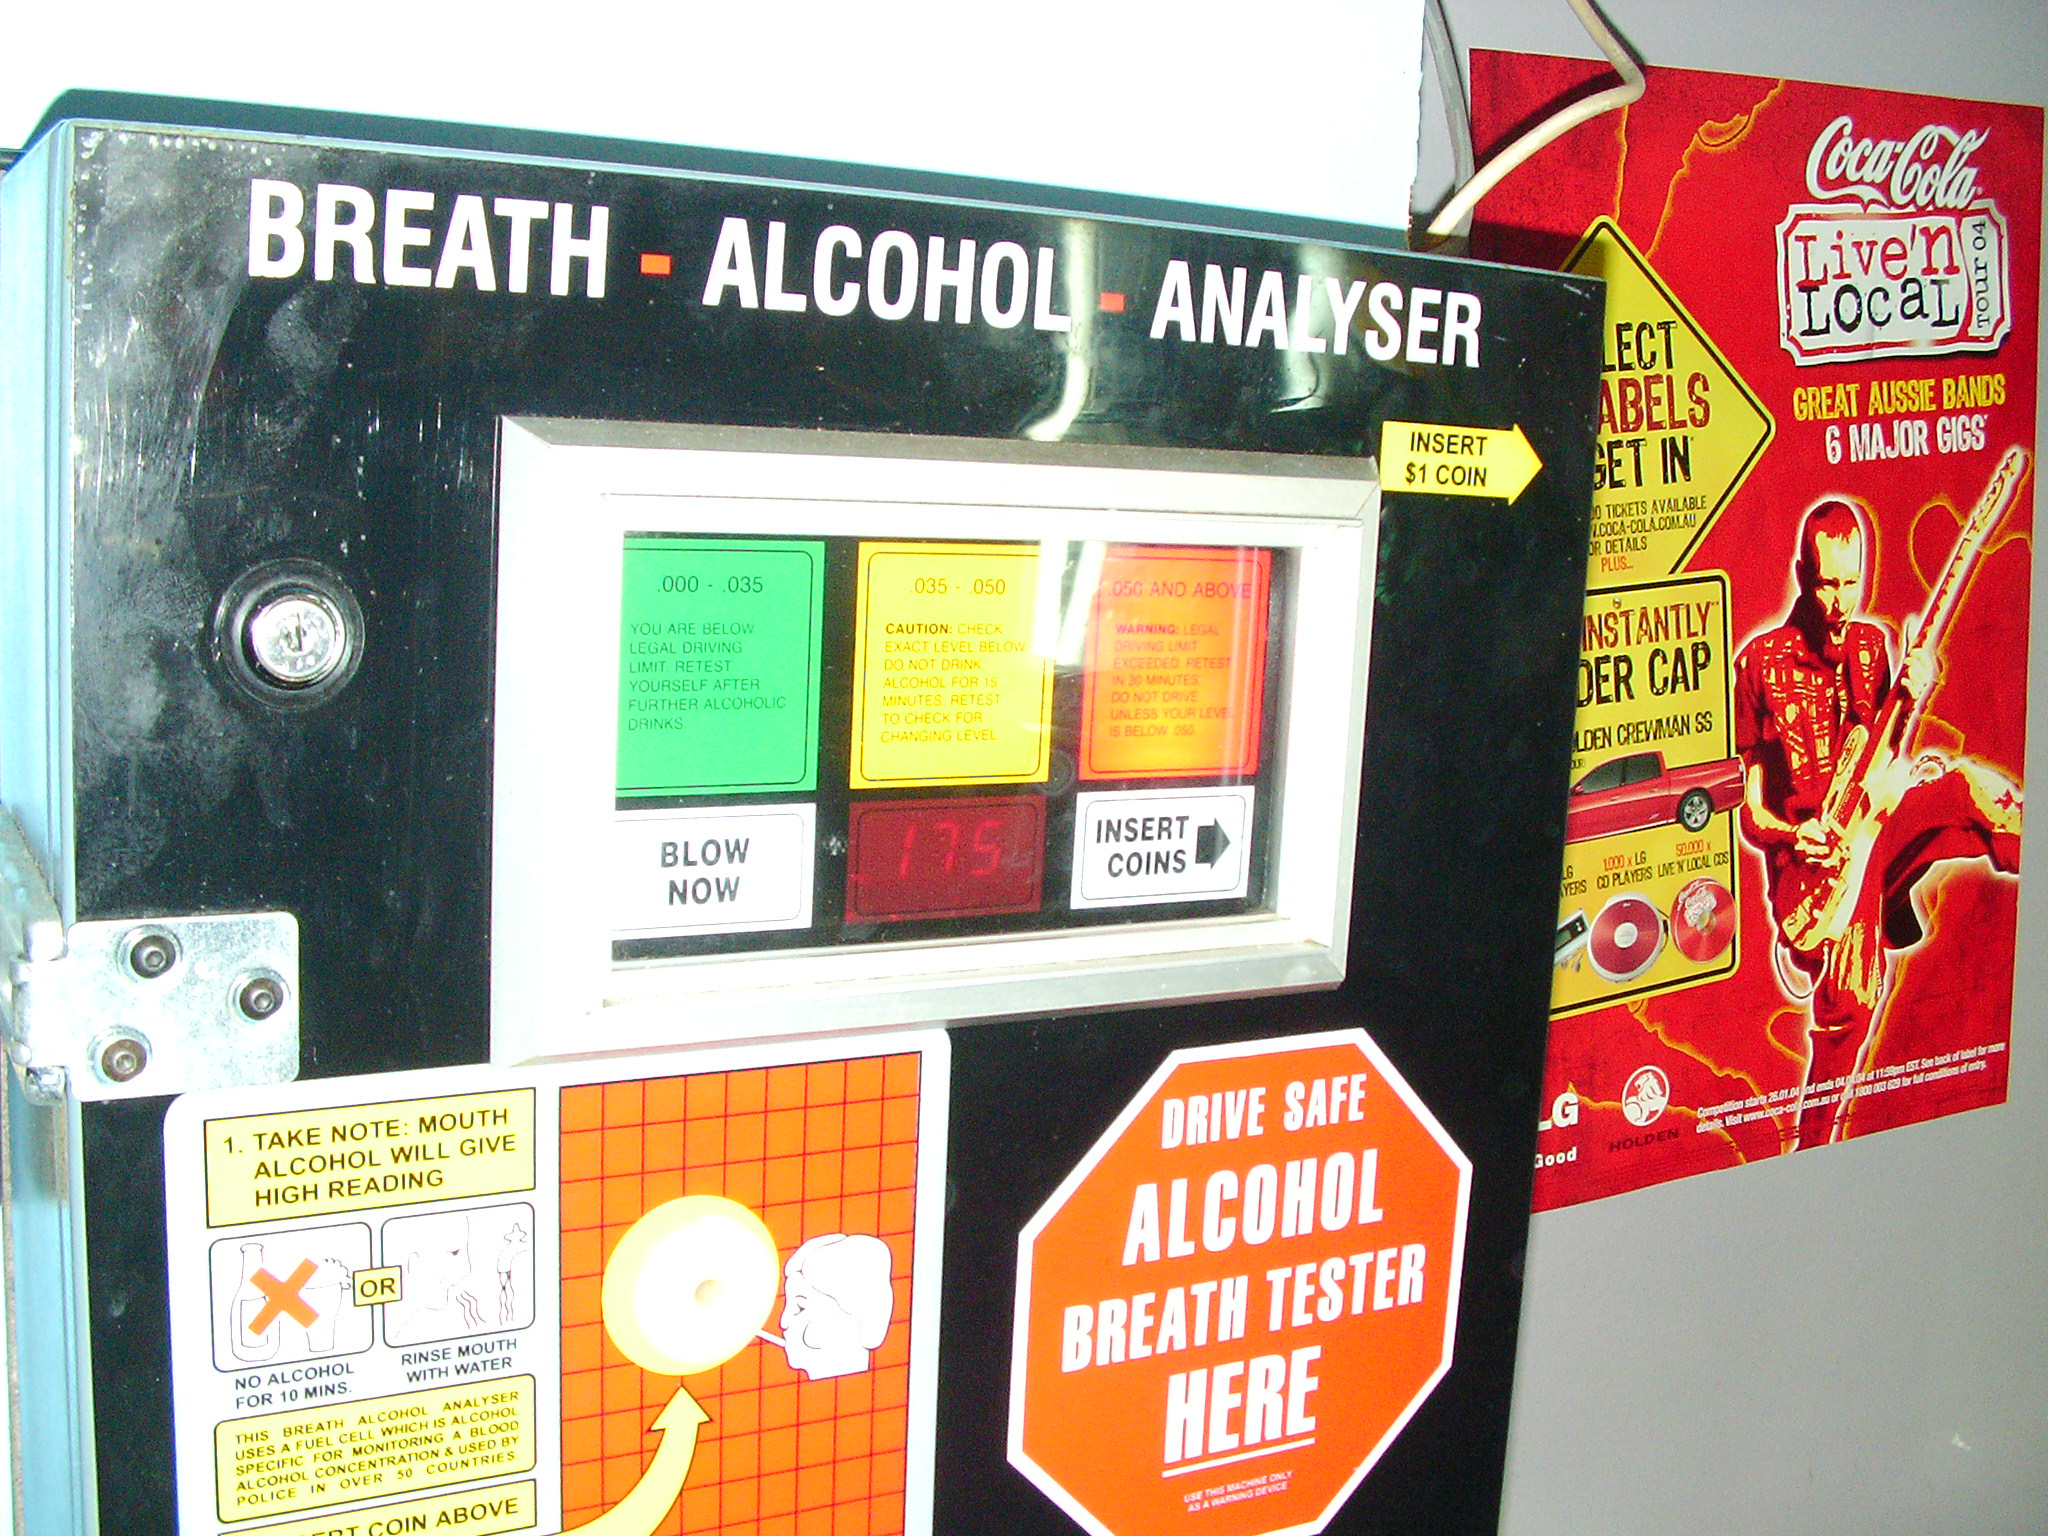 Breath Alcohol Analyser